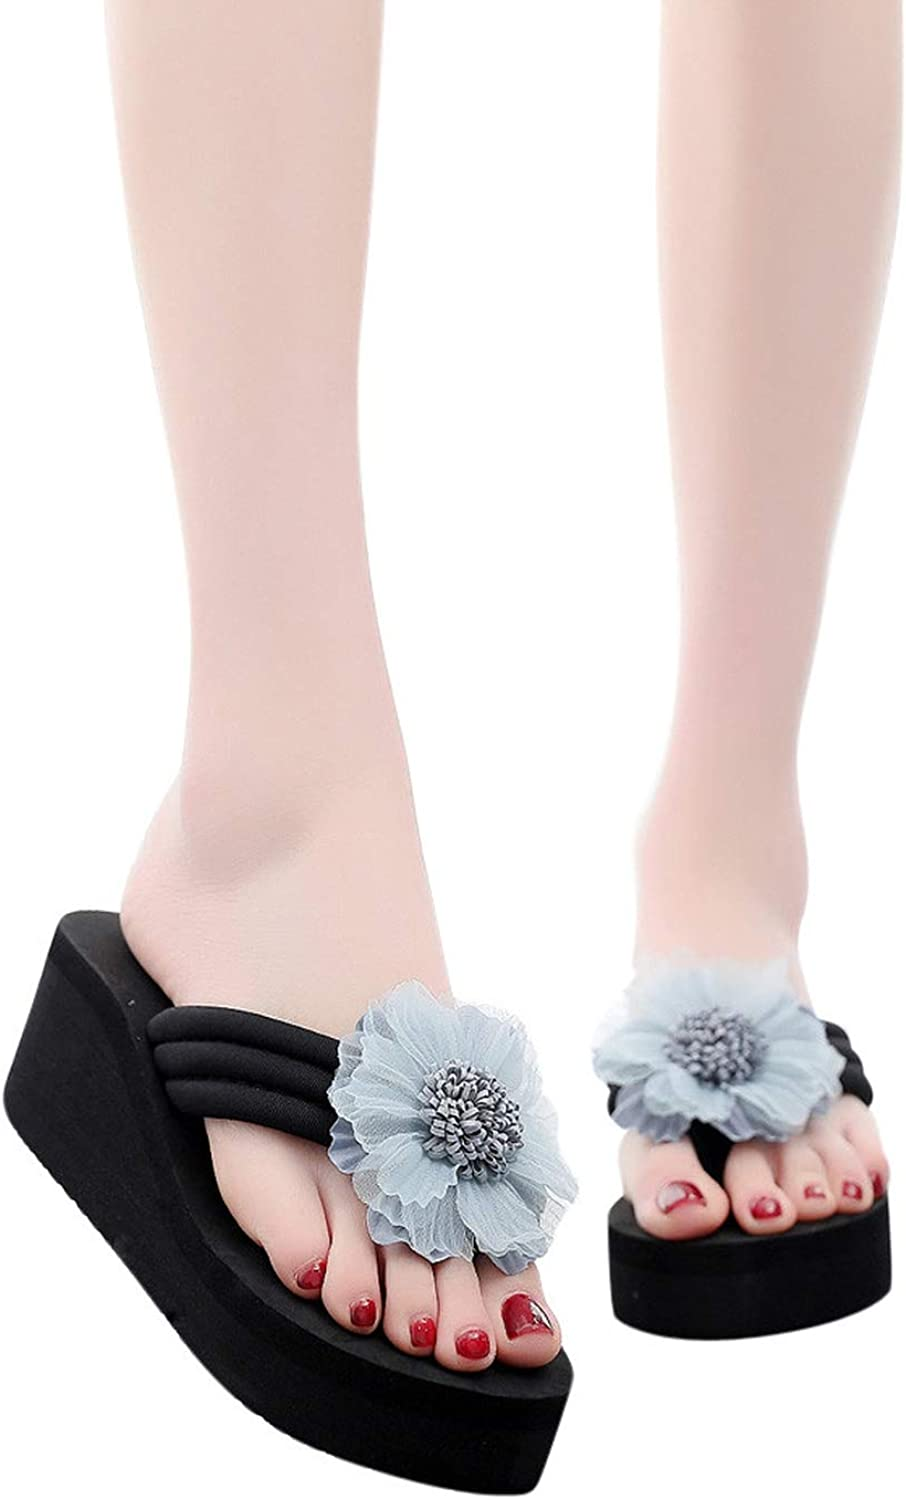 Joyhul 2019 New shoes Women Slippers Women's Ladies Summer Flower Home Wedges Beach shoes Sandals Flip Flops Slippers shoes De women,Light bluee,7,United States